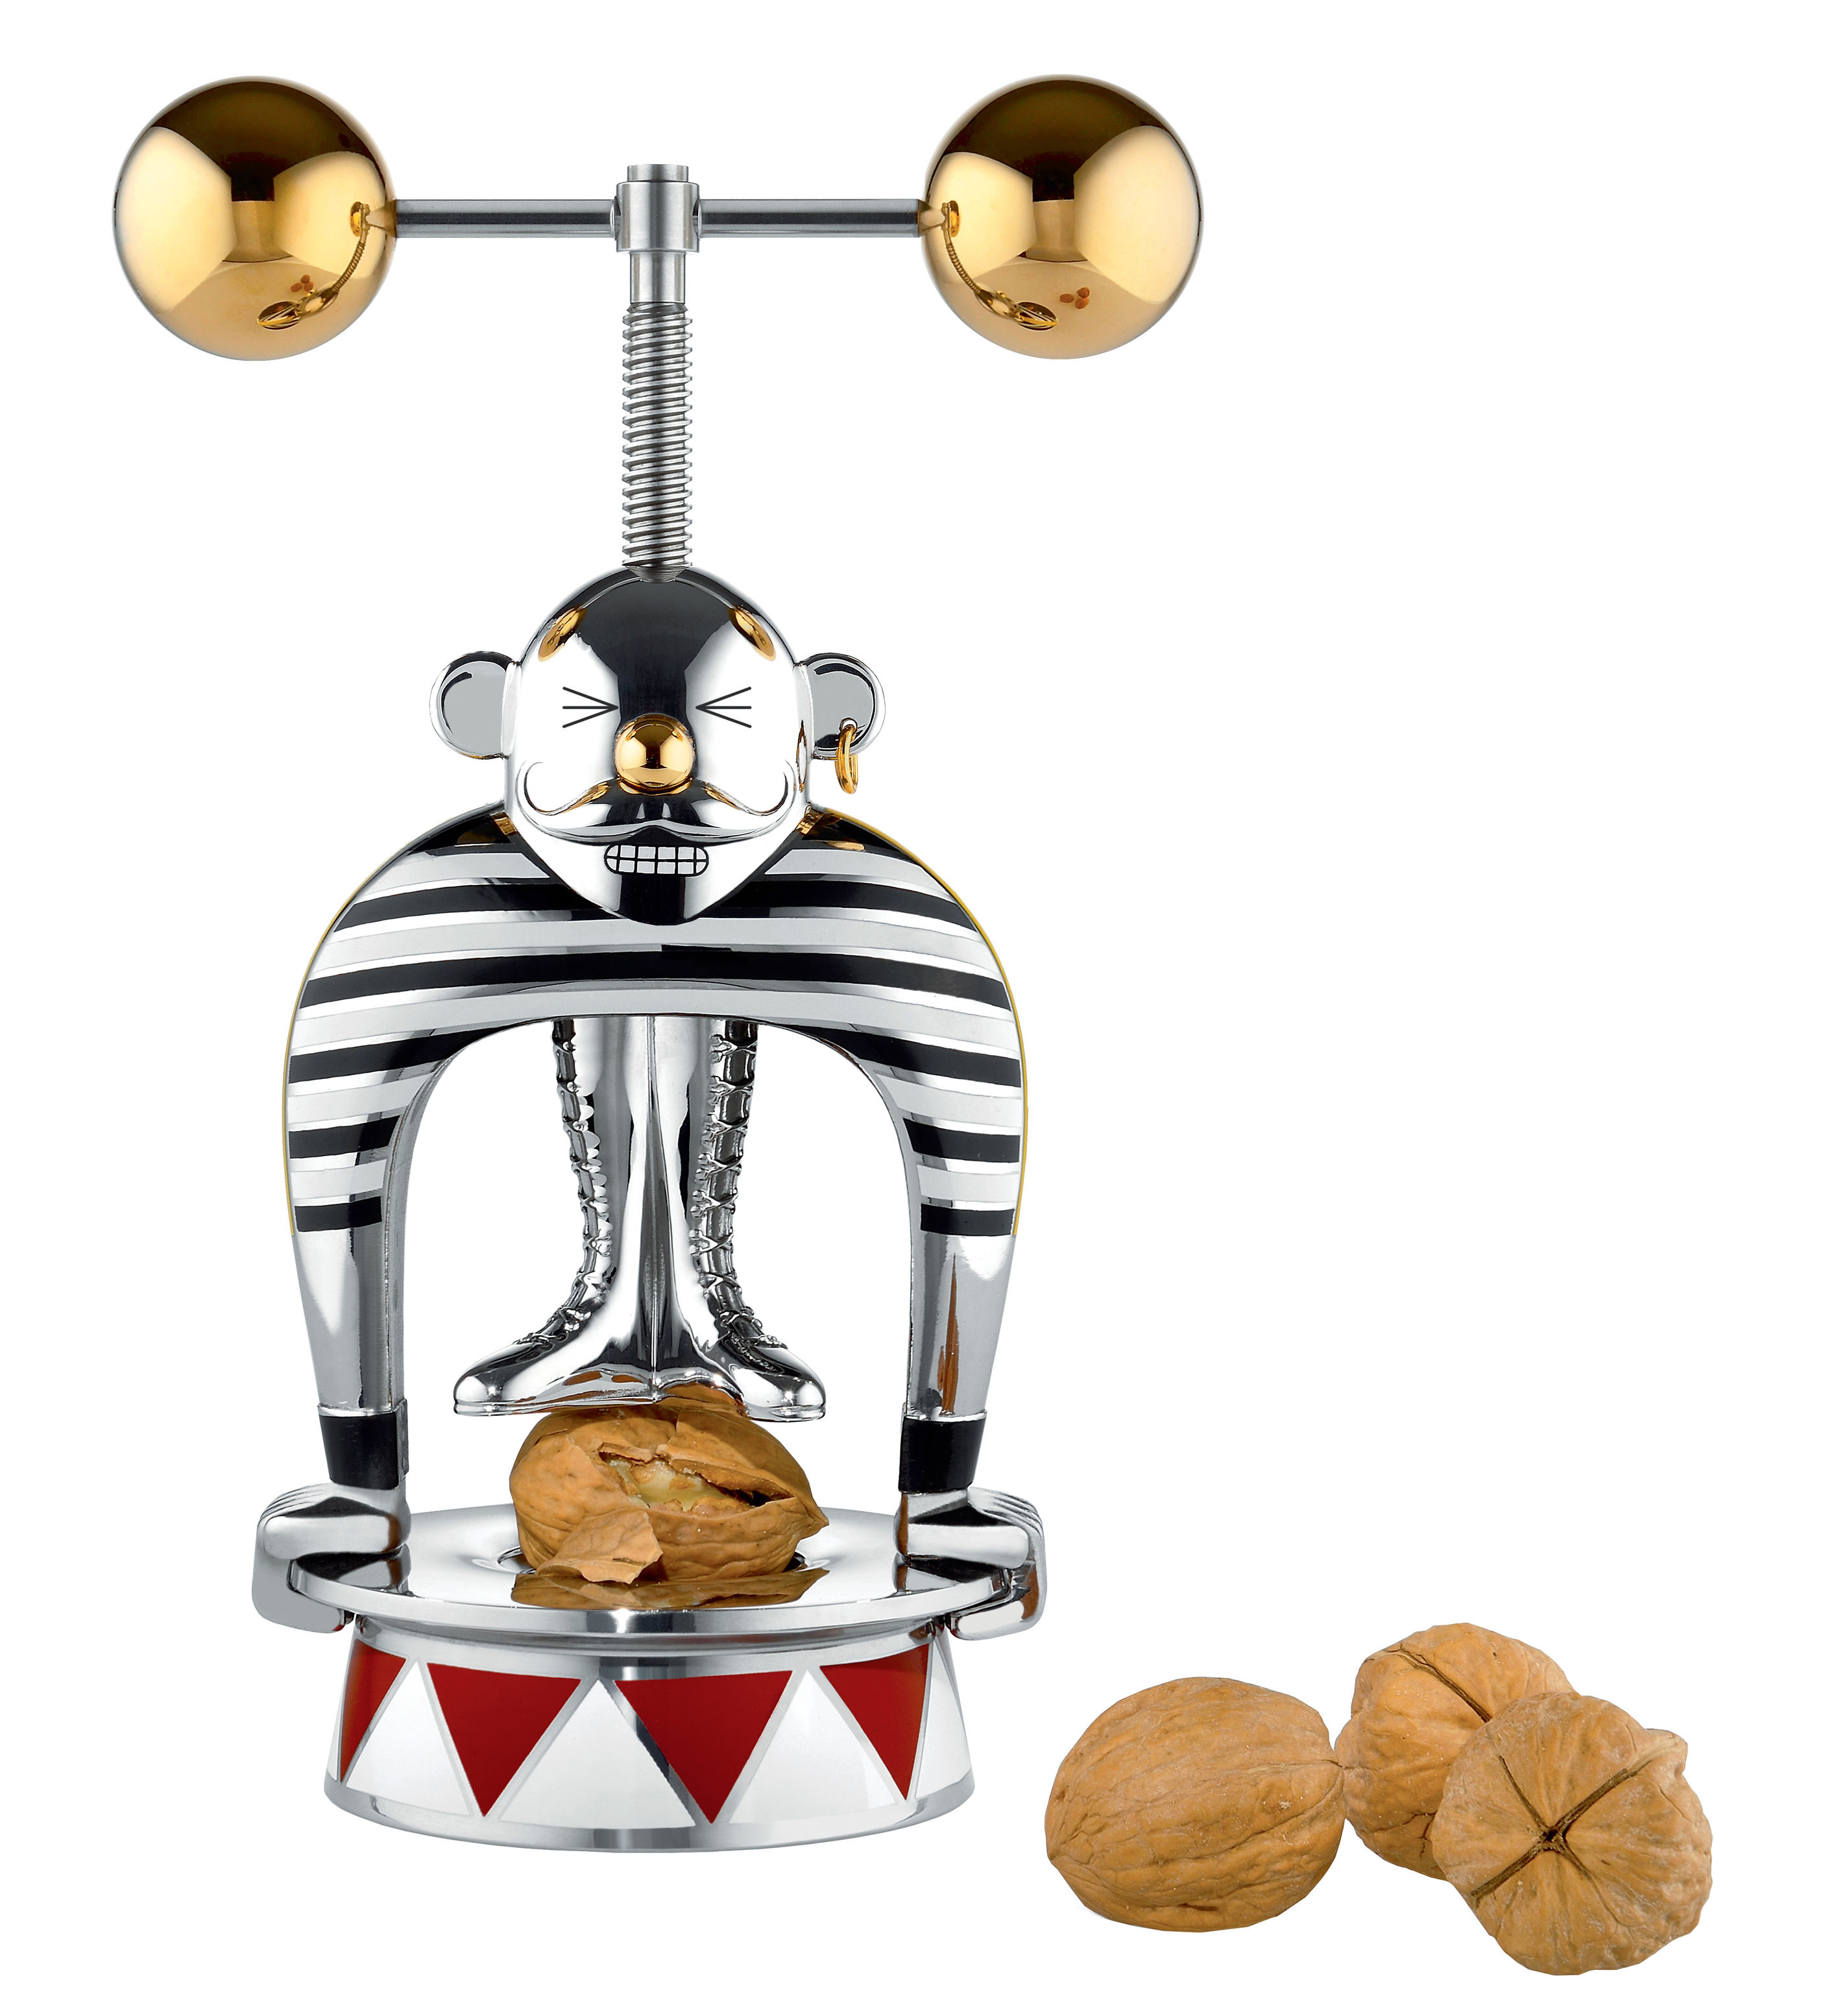 Tableware - Kitchen Accessories - Strongman Nut cracker - Circus - Numbered limited edition by Alessi - Stainless steel & gold - Painted stainless steel